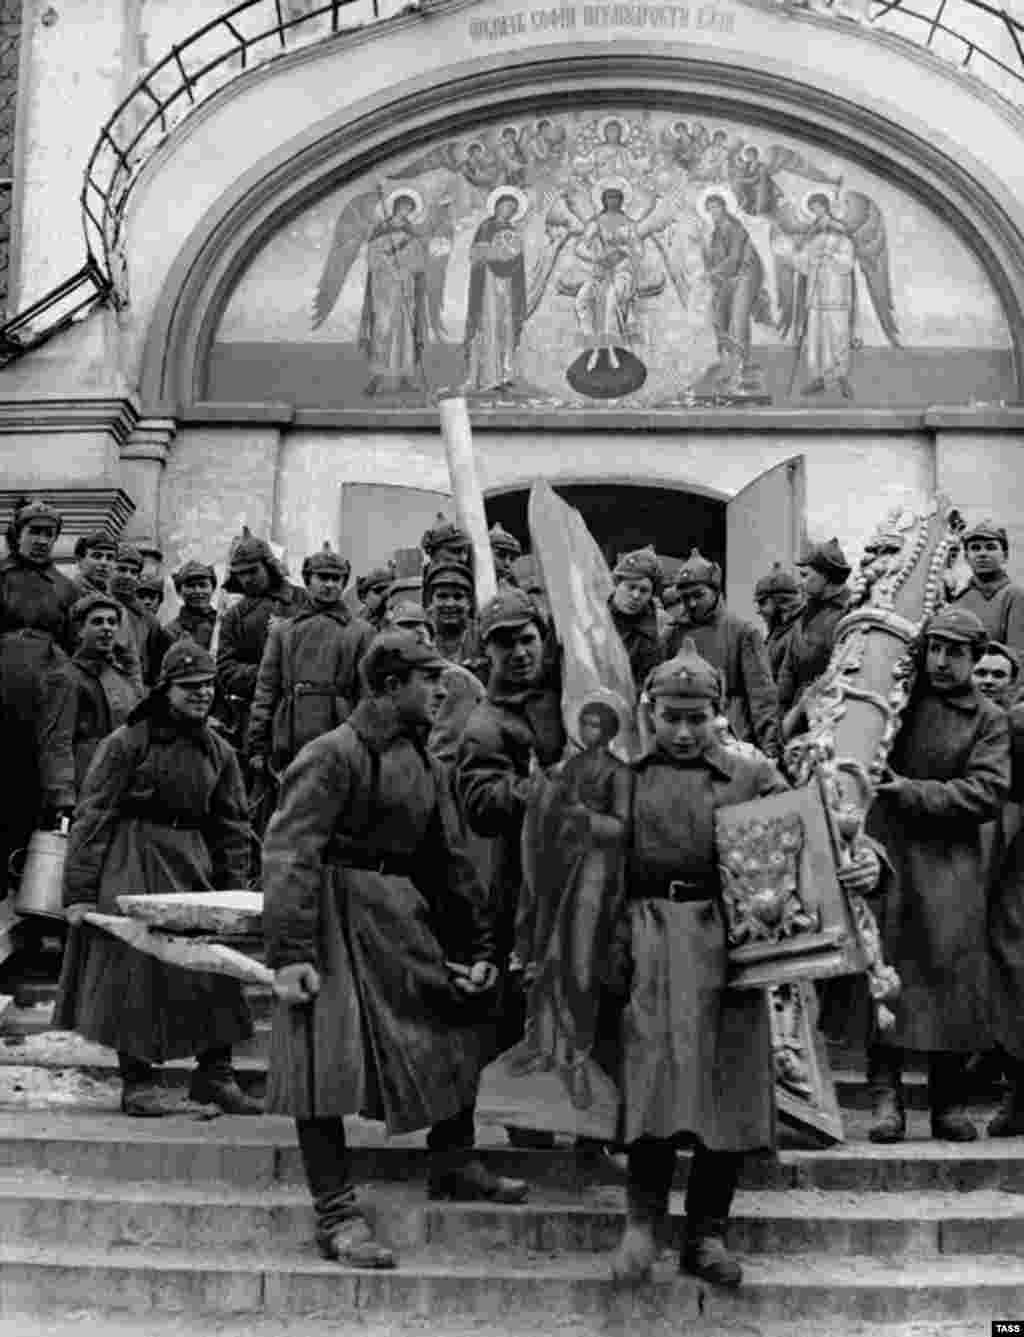 Communists in budyonovkas loot a Moscow monastery in 1923. The caps were used mostly through Russia's winter months, but the budyonovka's relatively thin felt was proving insufficiently warm for hard frosts.